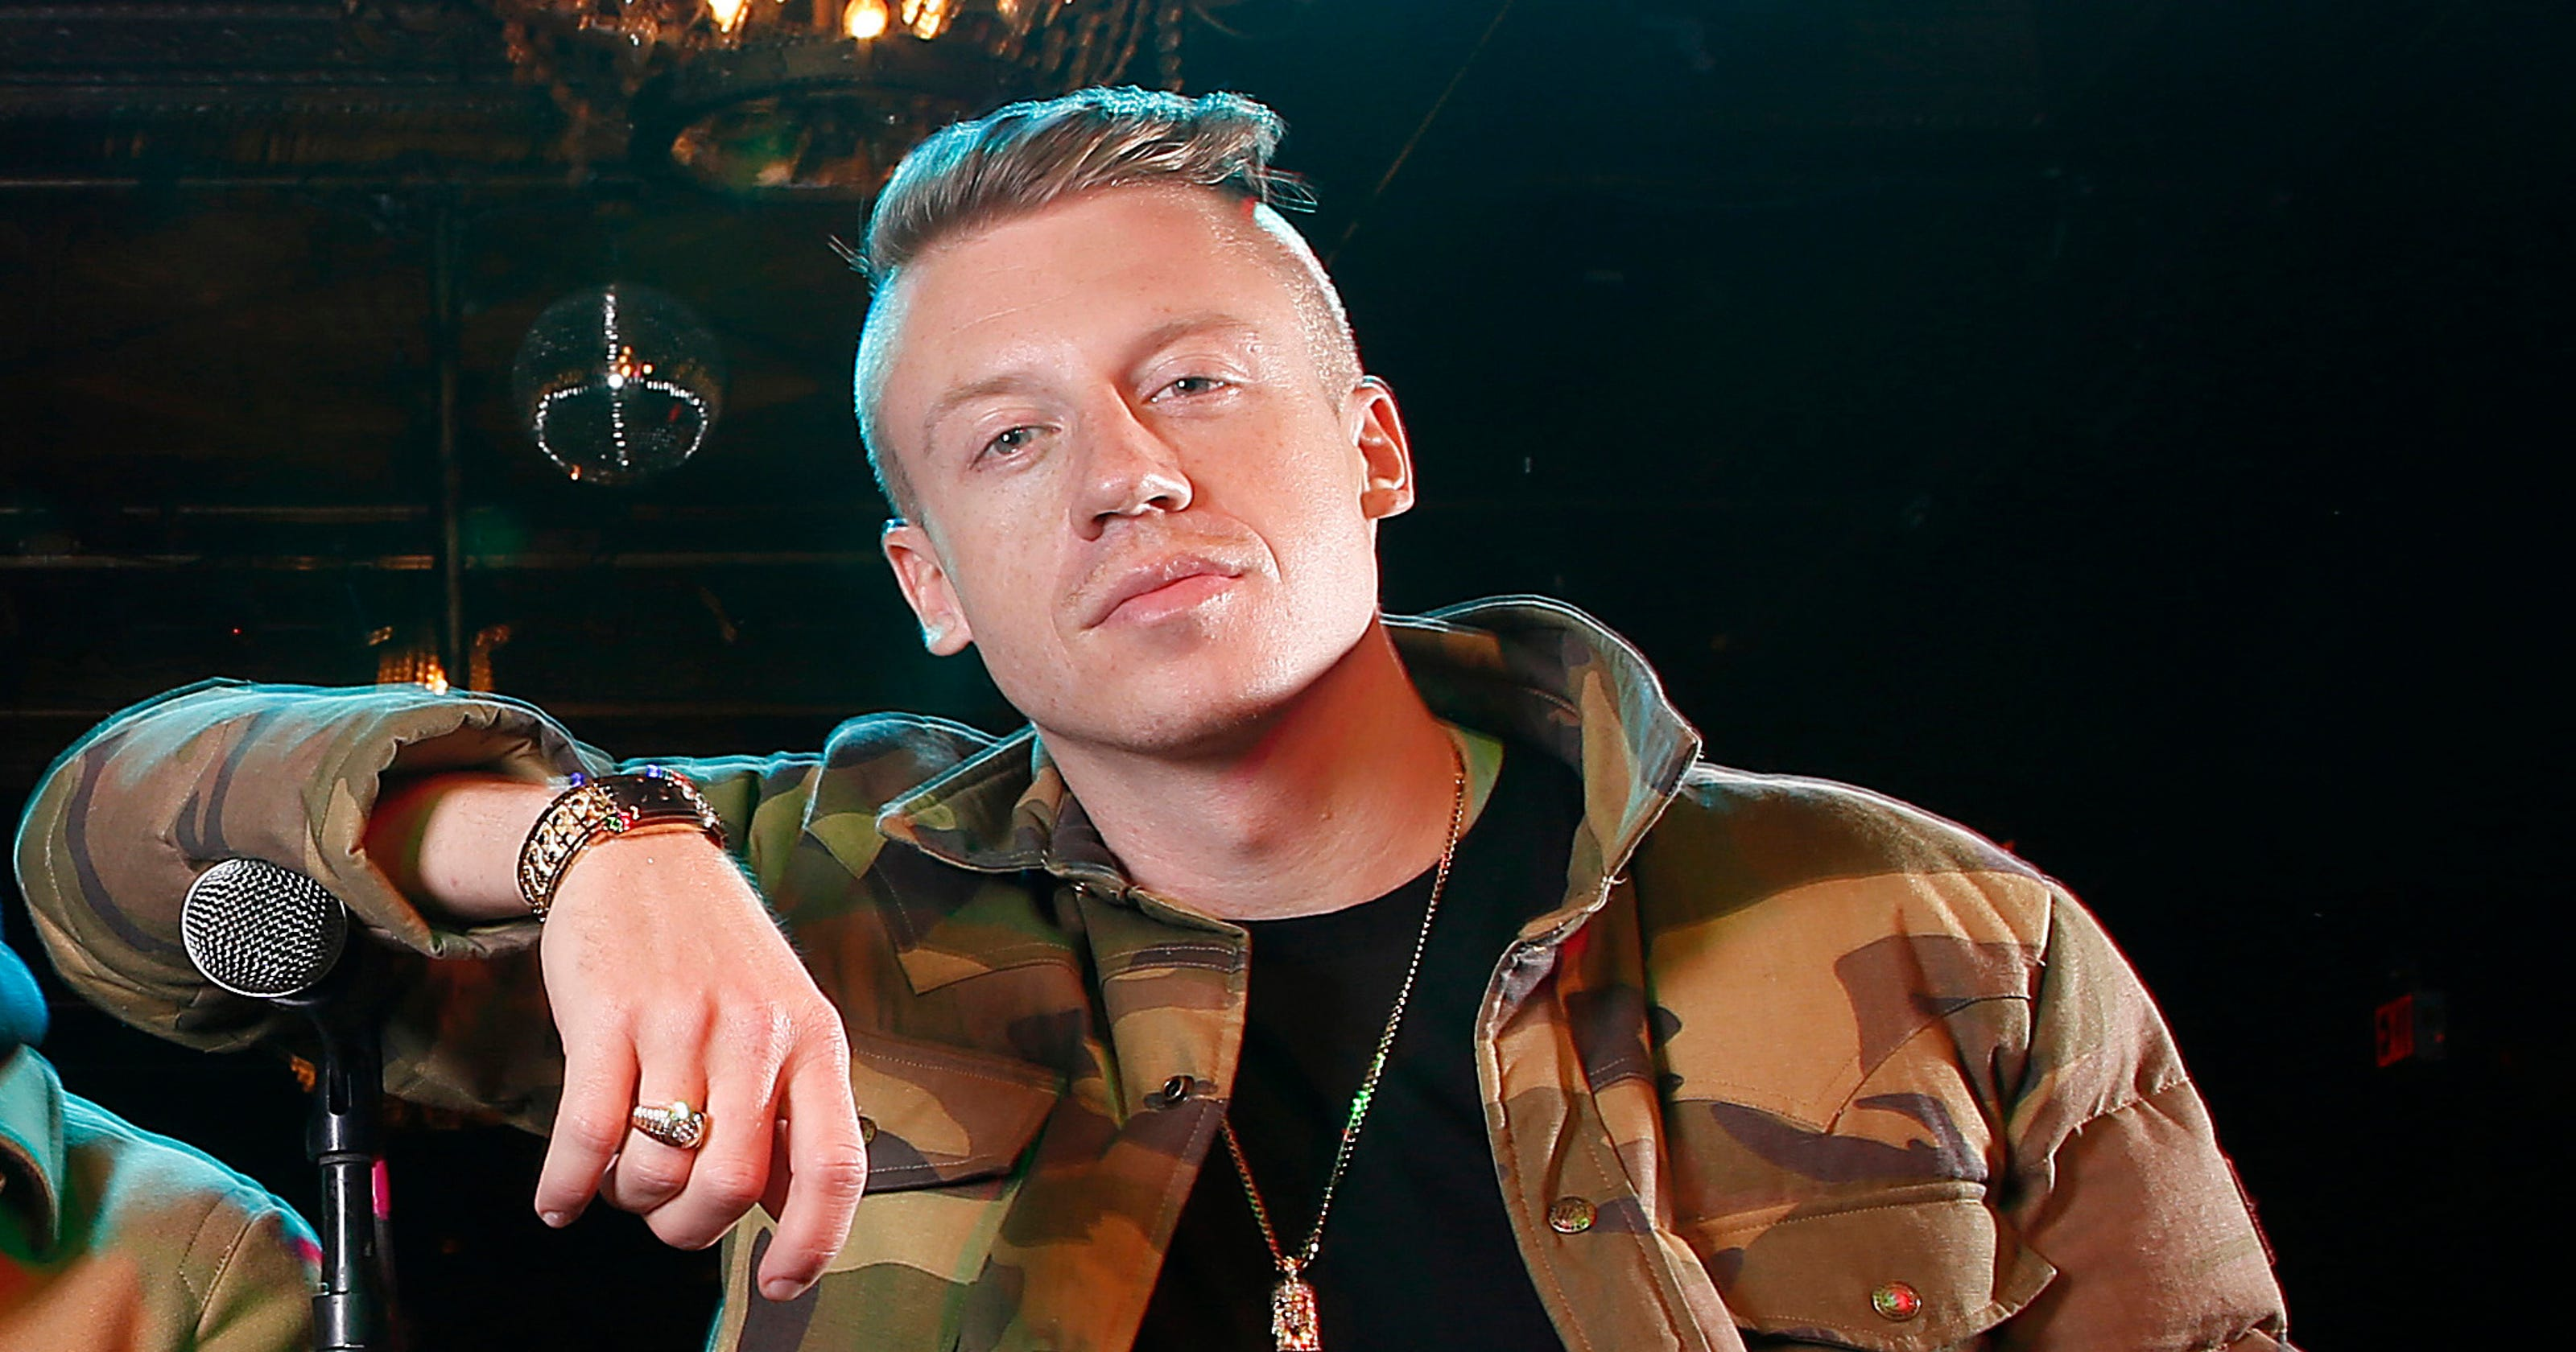 Spotify predicts Grammys for Macklemore, Imagine Dragons